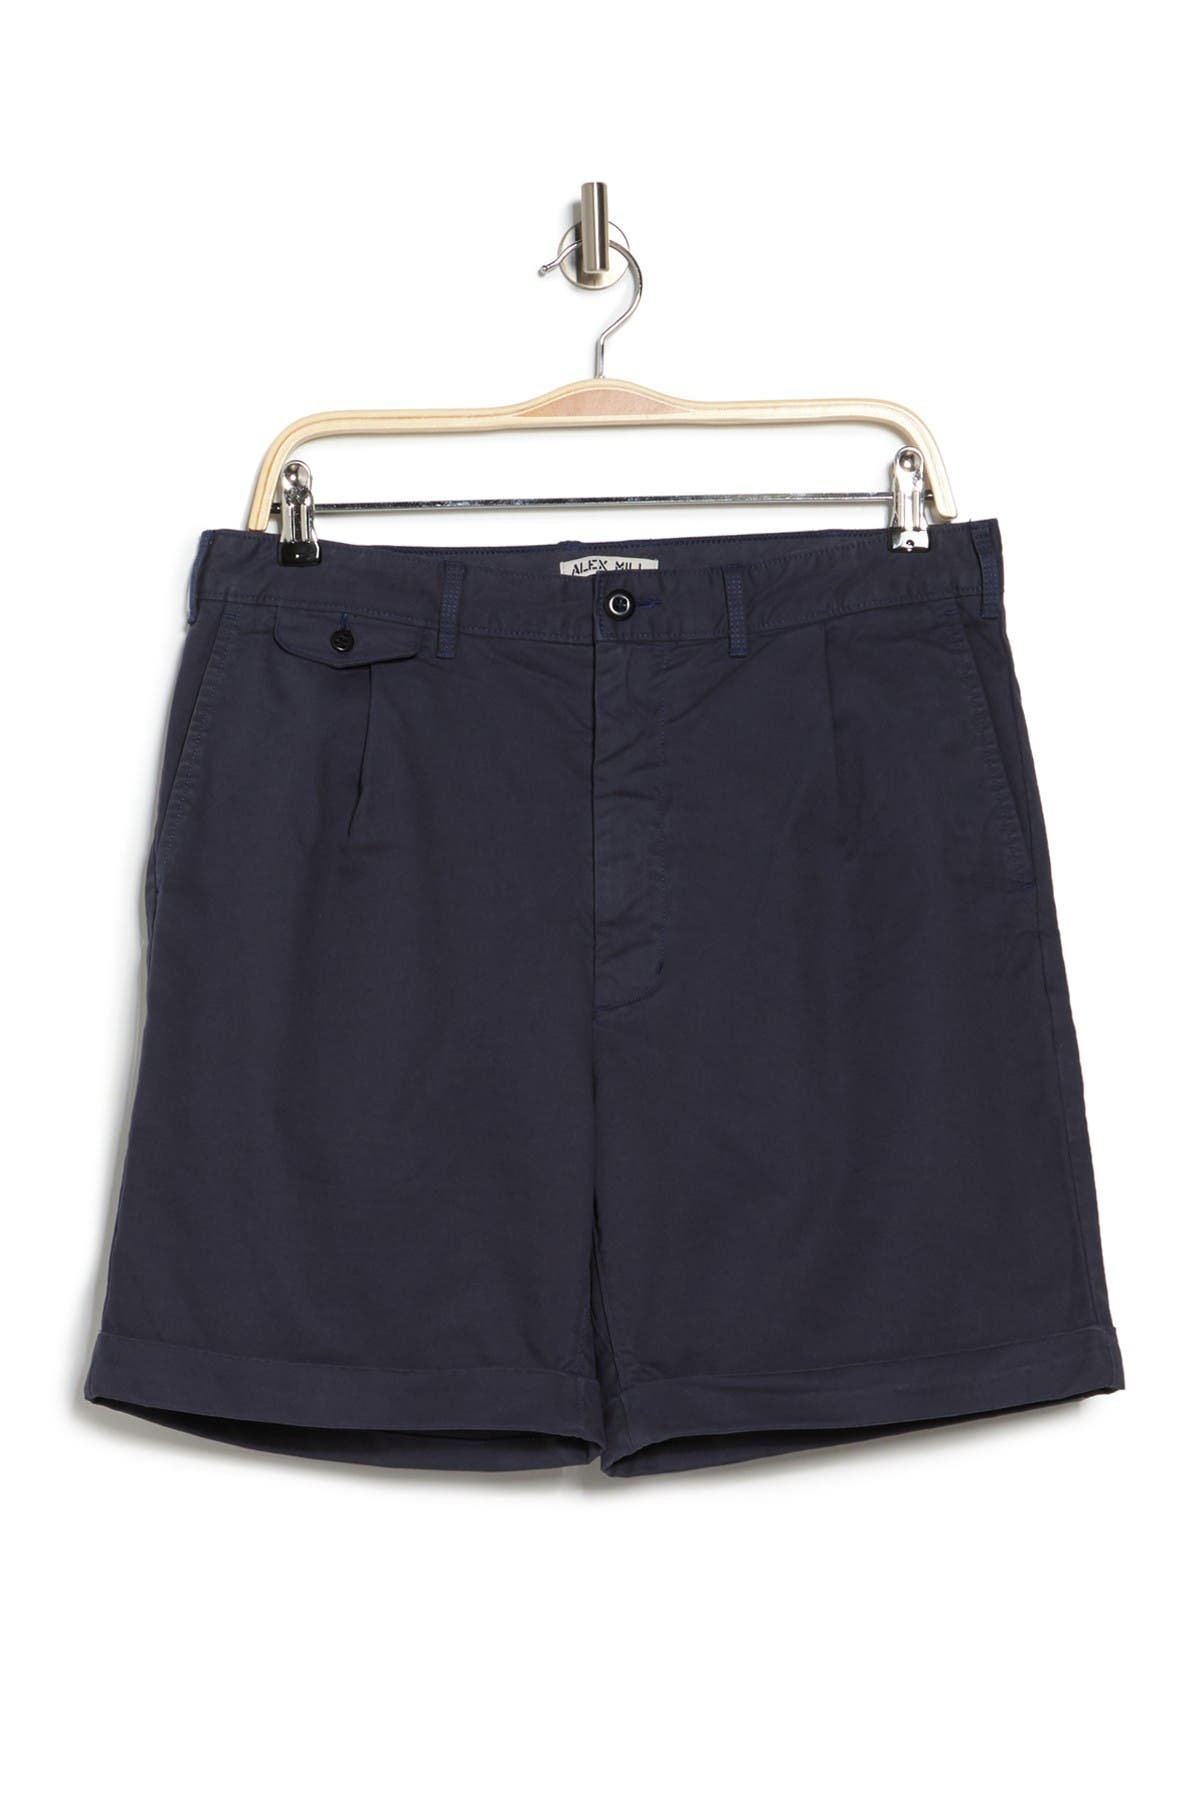 Alex Mill PLEATED CHINO SHORTS